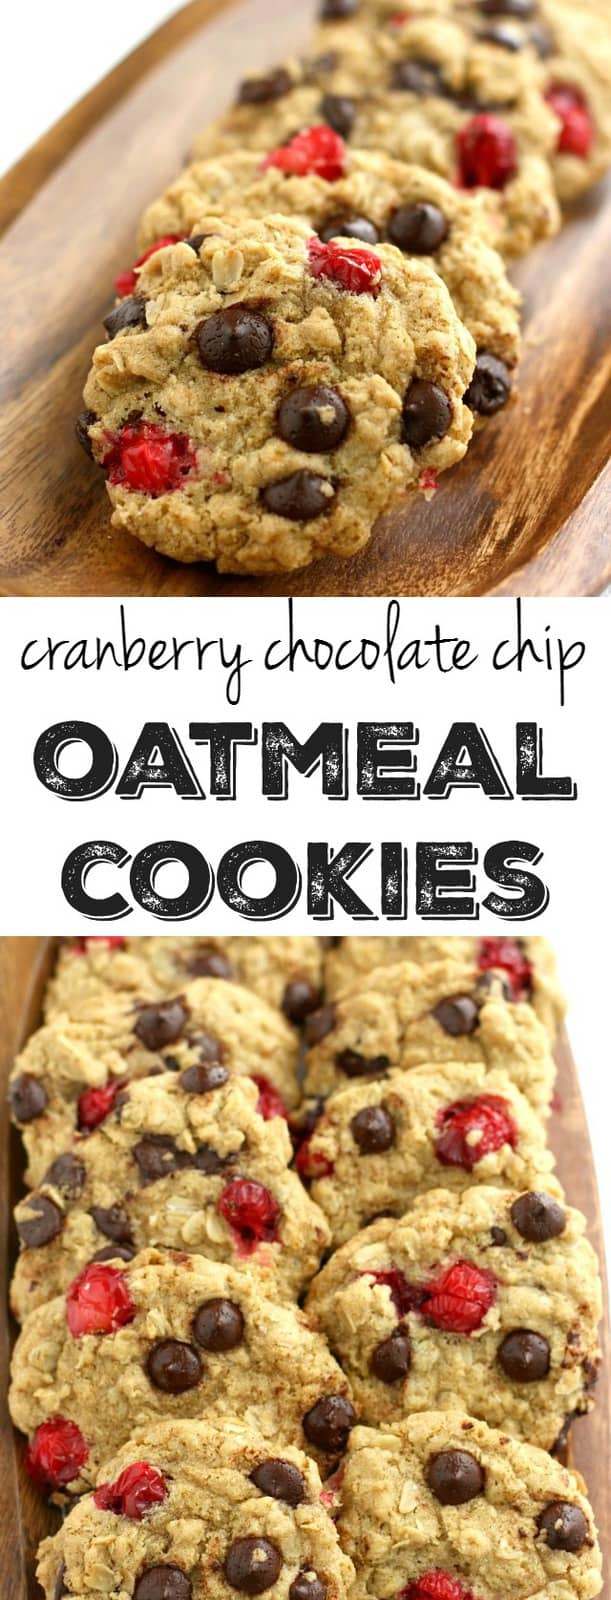 Chocolate Chip Oatmeal Cookies with Fresh Cranberries ...